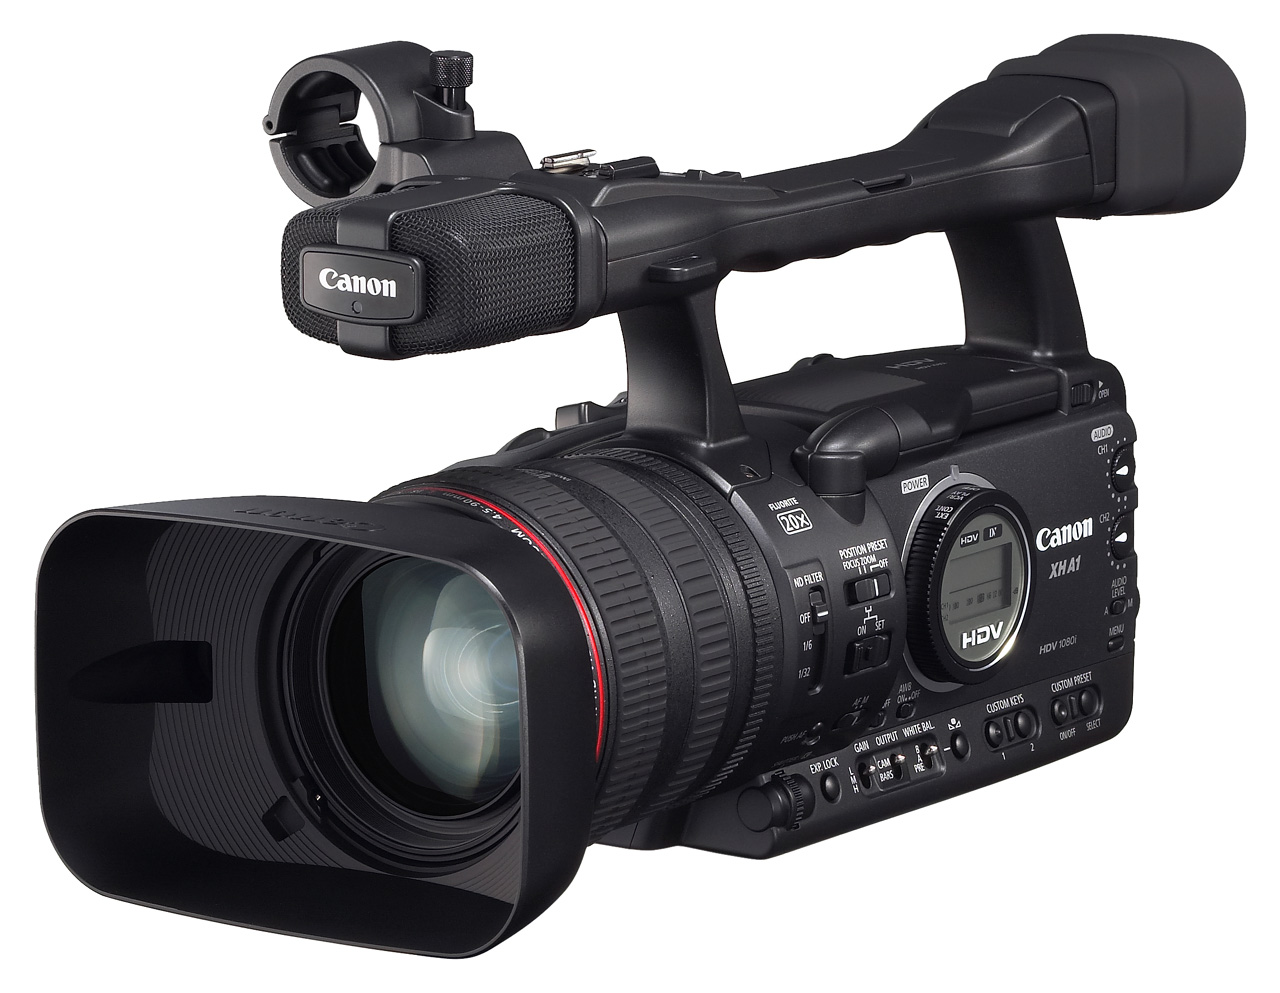 Canon XHA1 HD Video Camera